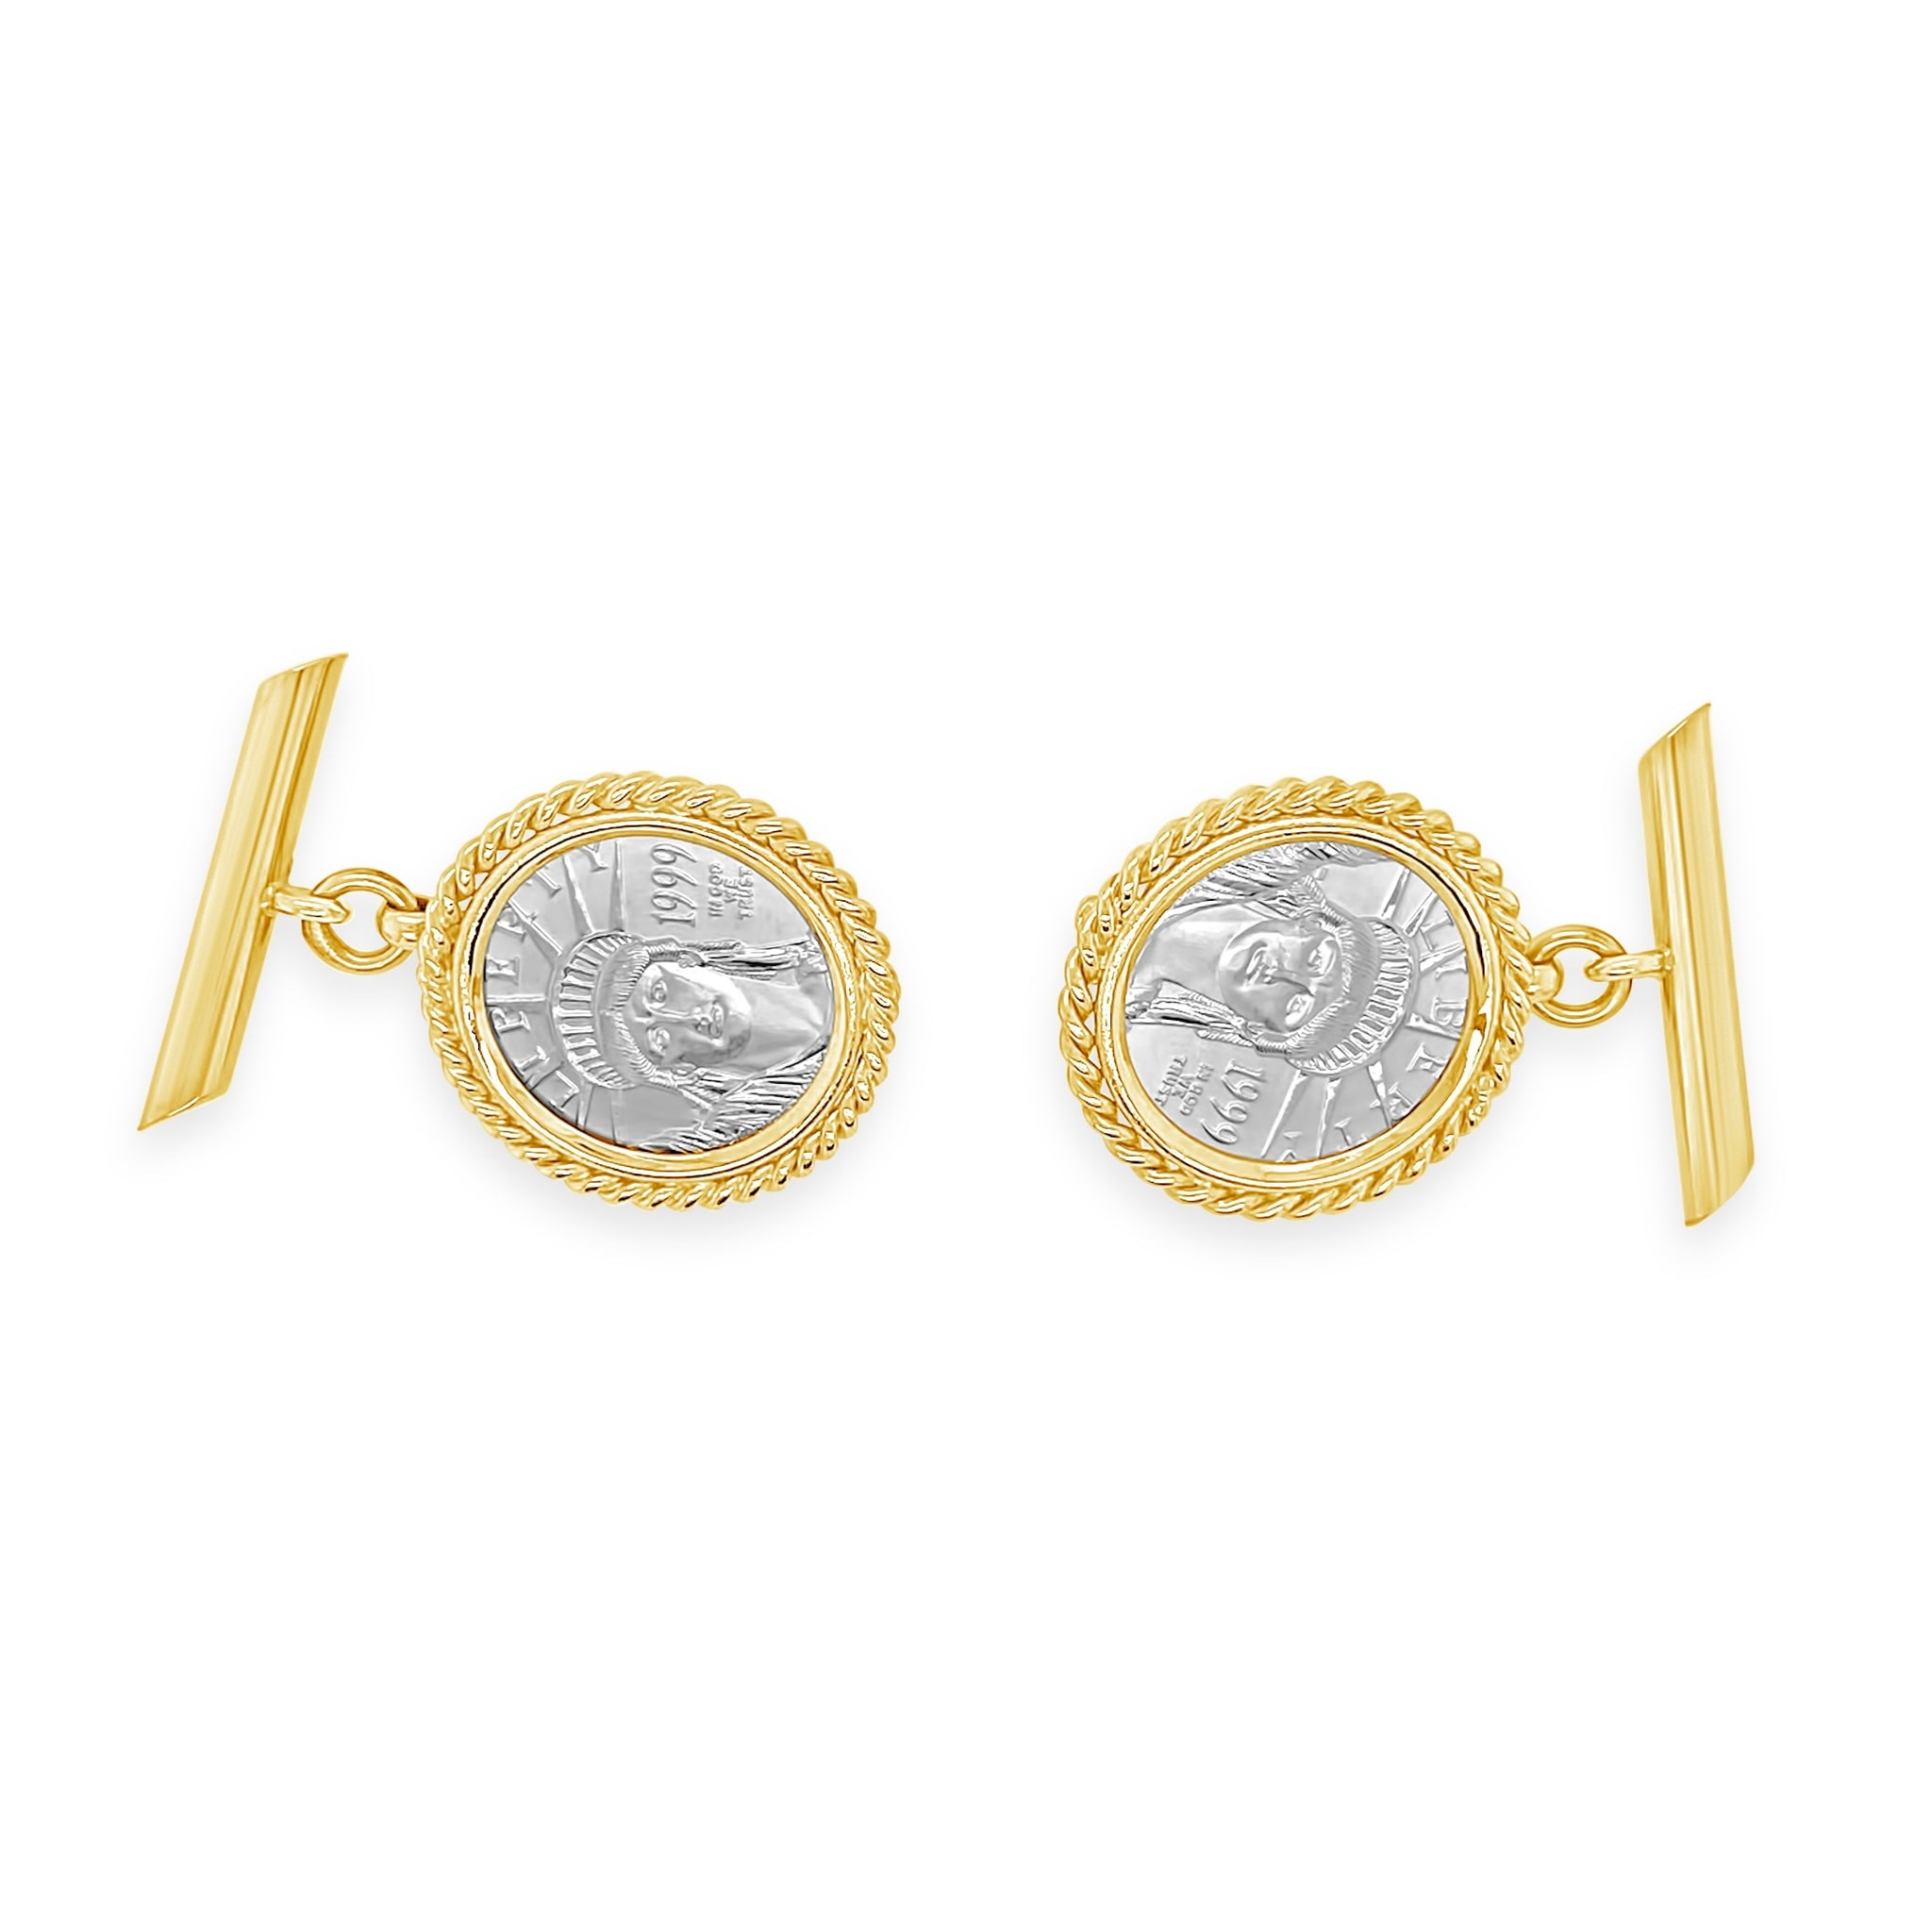 Platinum 1999 Coin Cufflinks